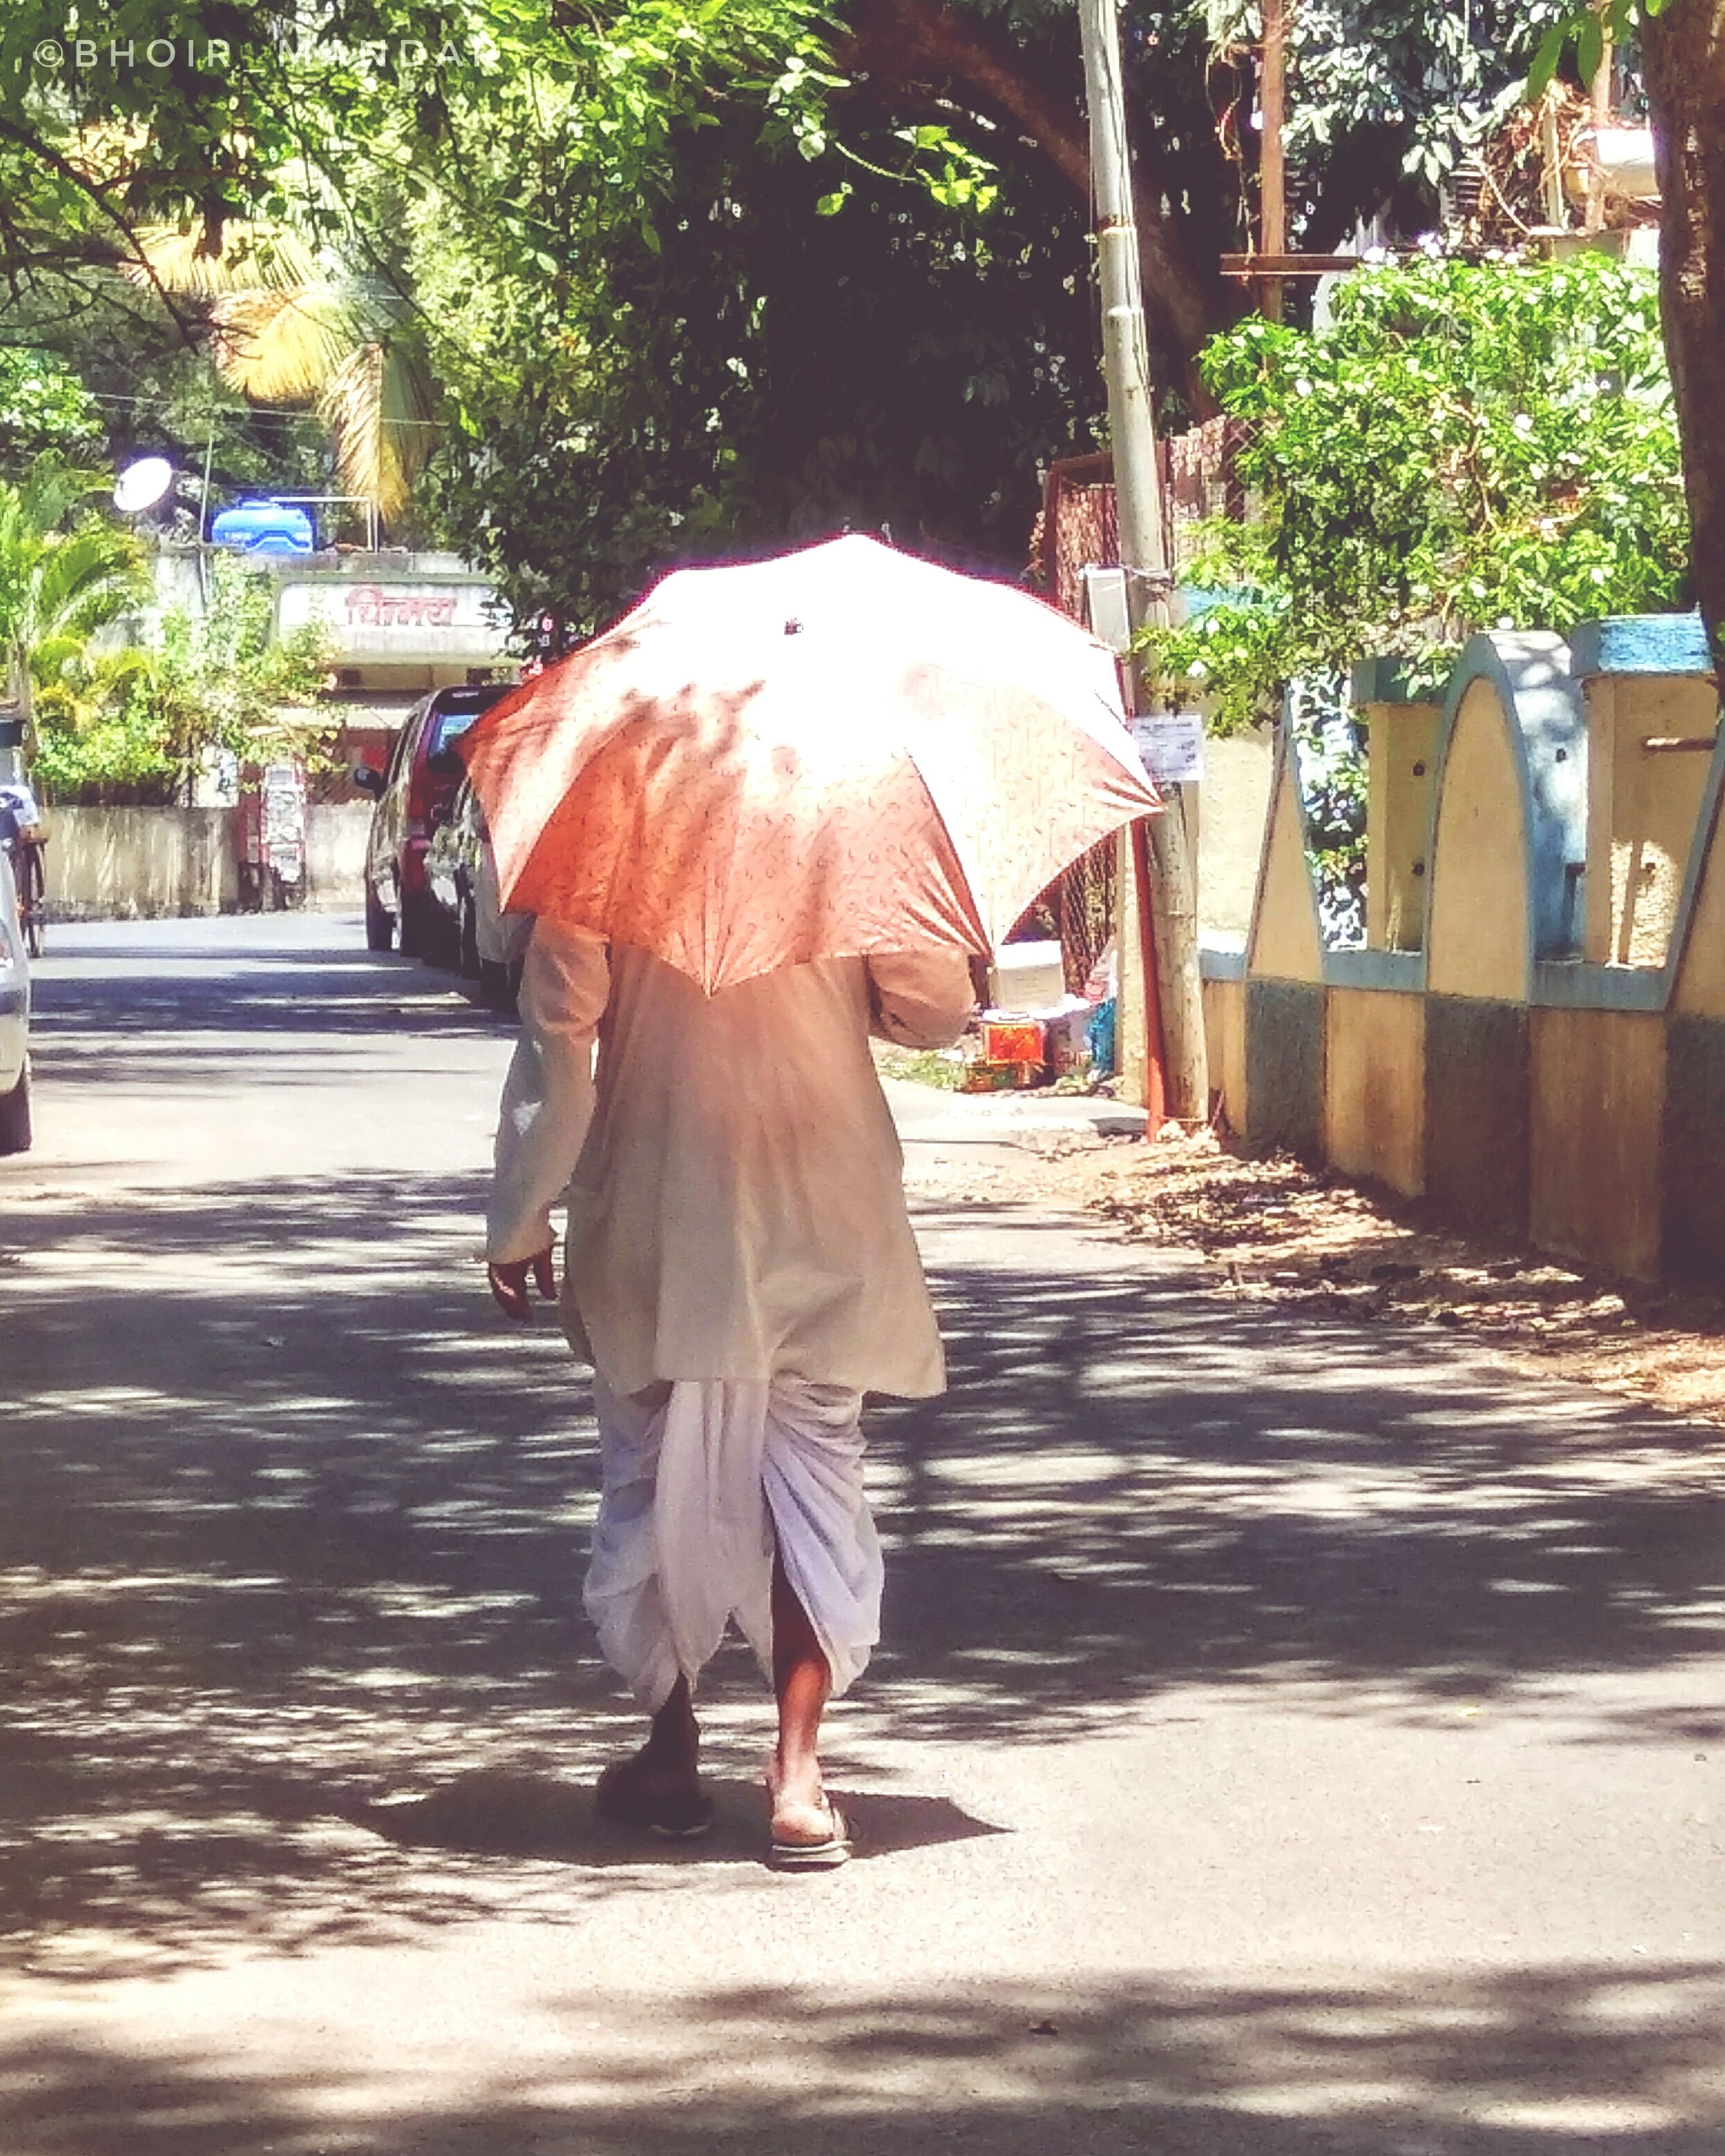 walking, real people, rear view, full length, one person, tree, lifestyles, outdoors, women, day, under, nature, adult, people